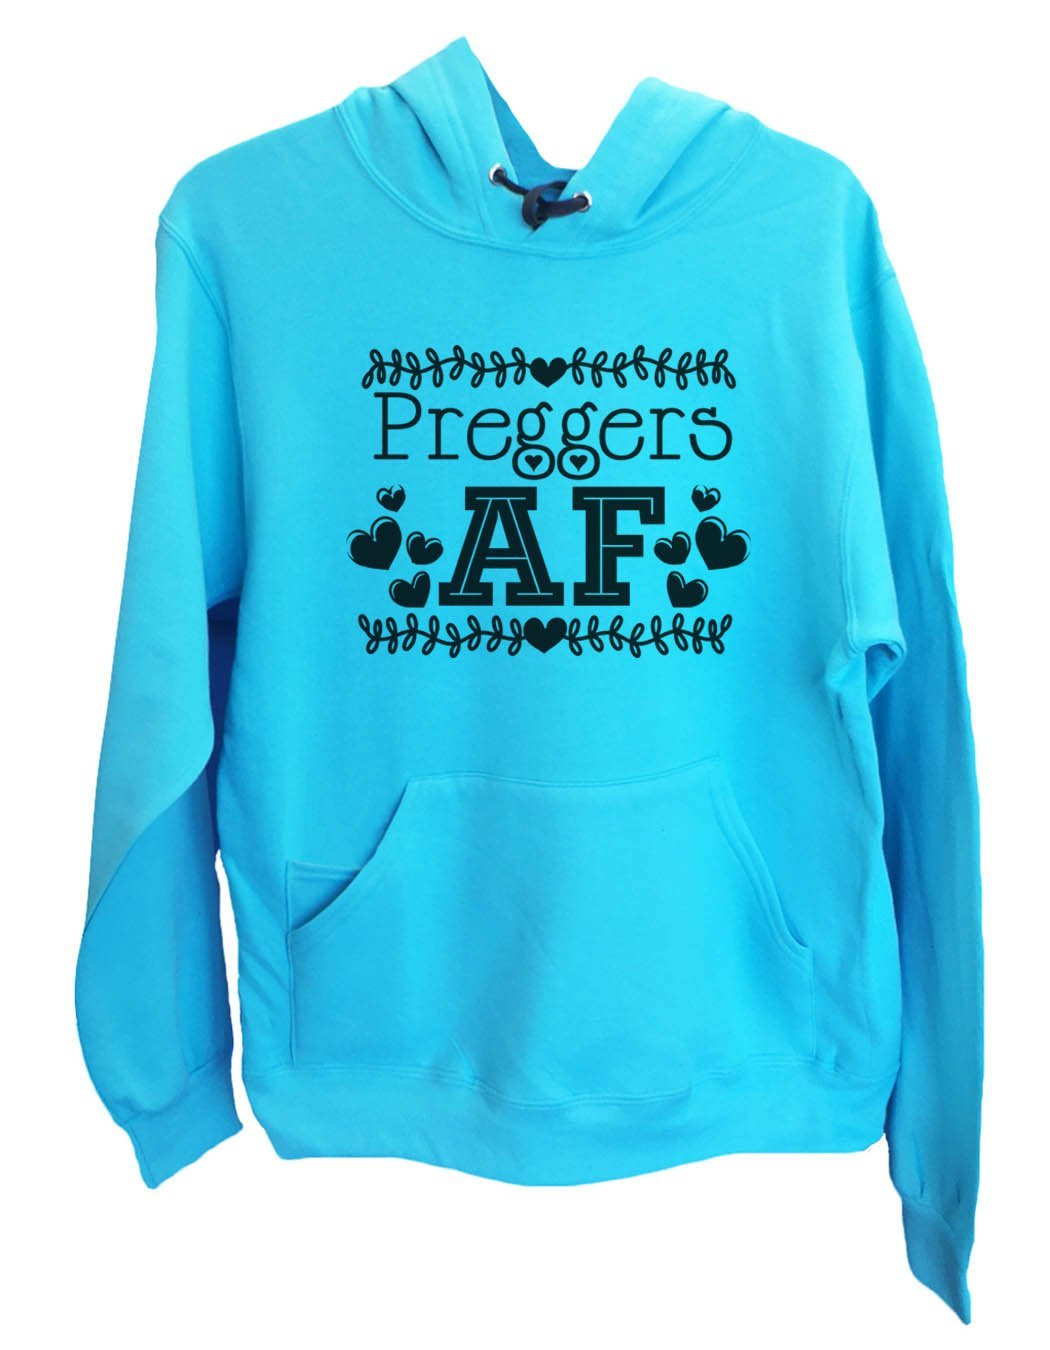 UNISEX HOODIE - Preggers Af - FUNNY MENS AND WOMENS HOODED SWEATSHIRTS - 2255 Funny Shirt Small / Turquoise